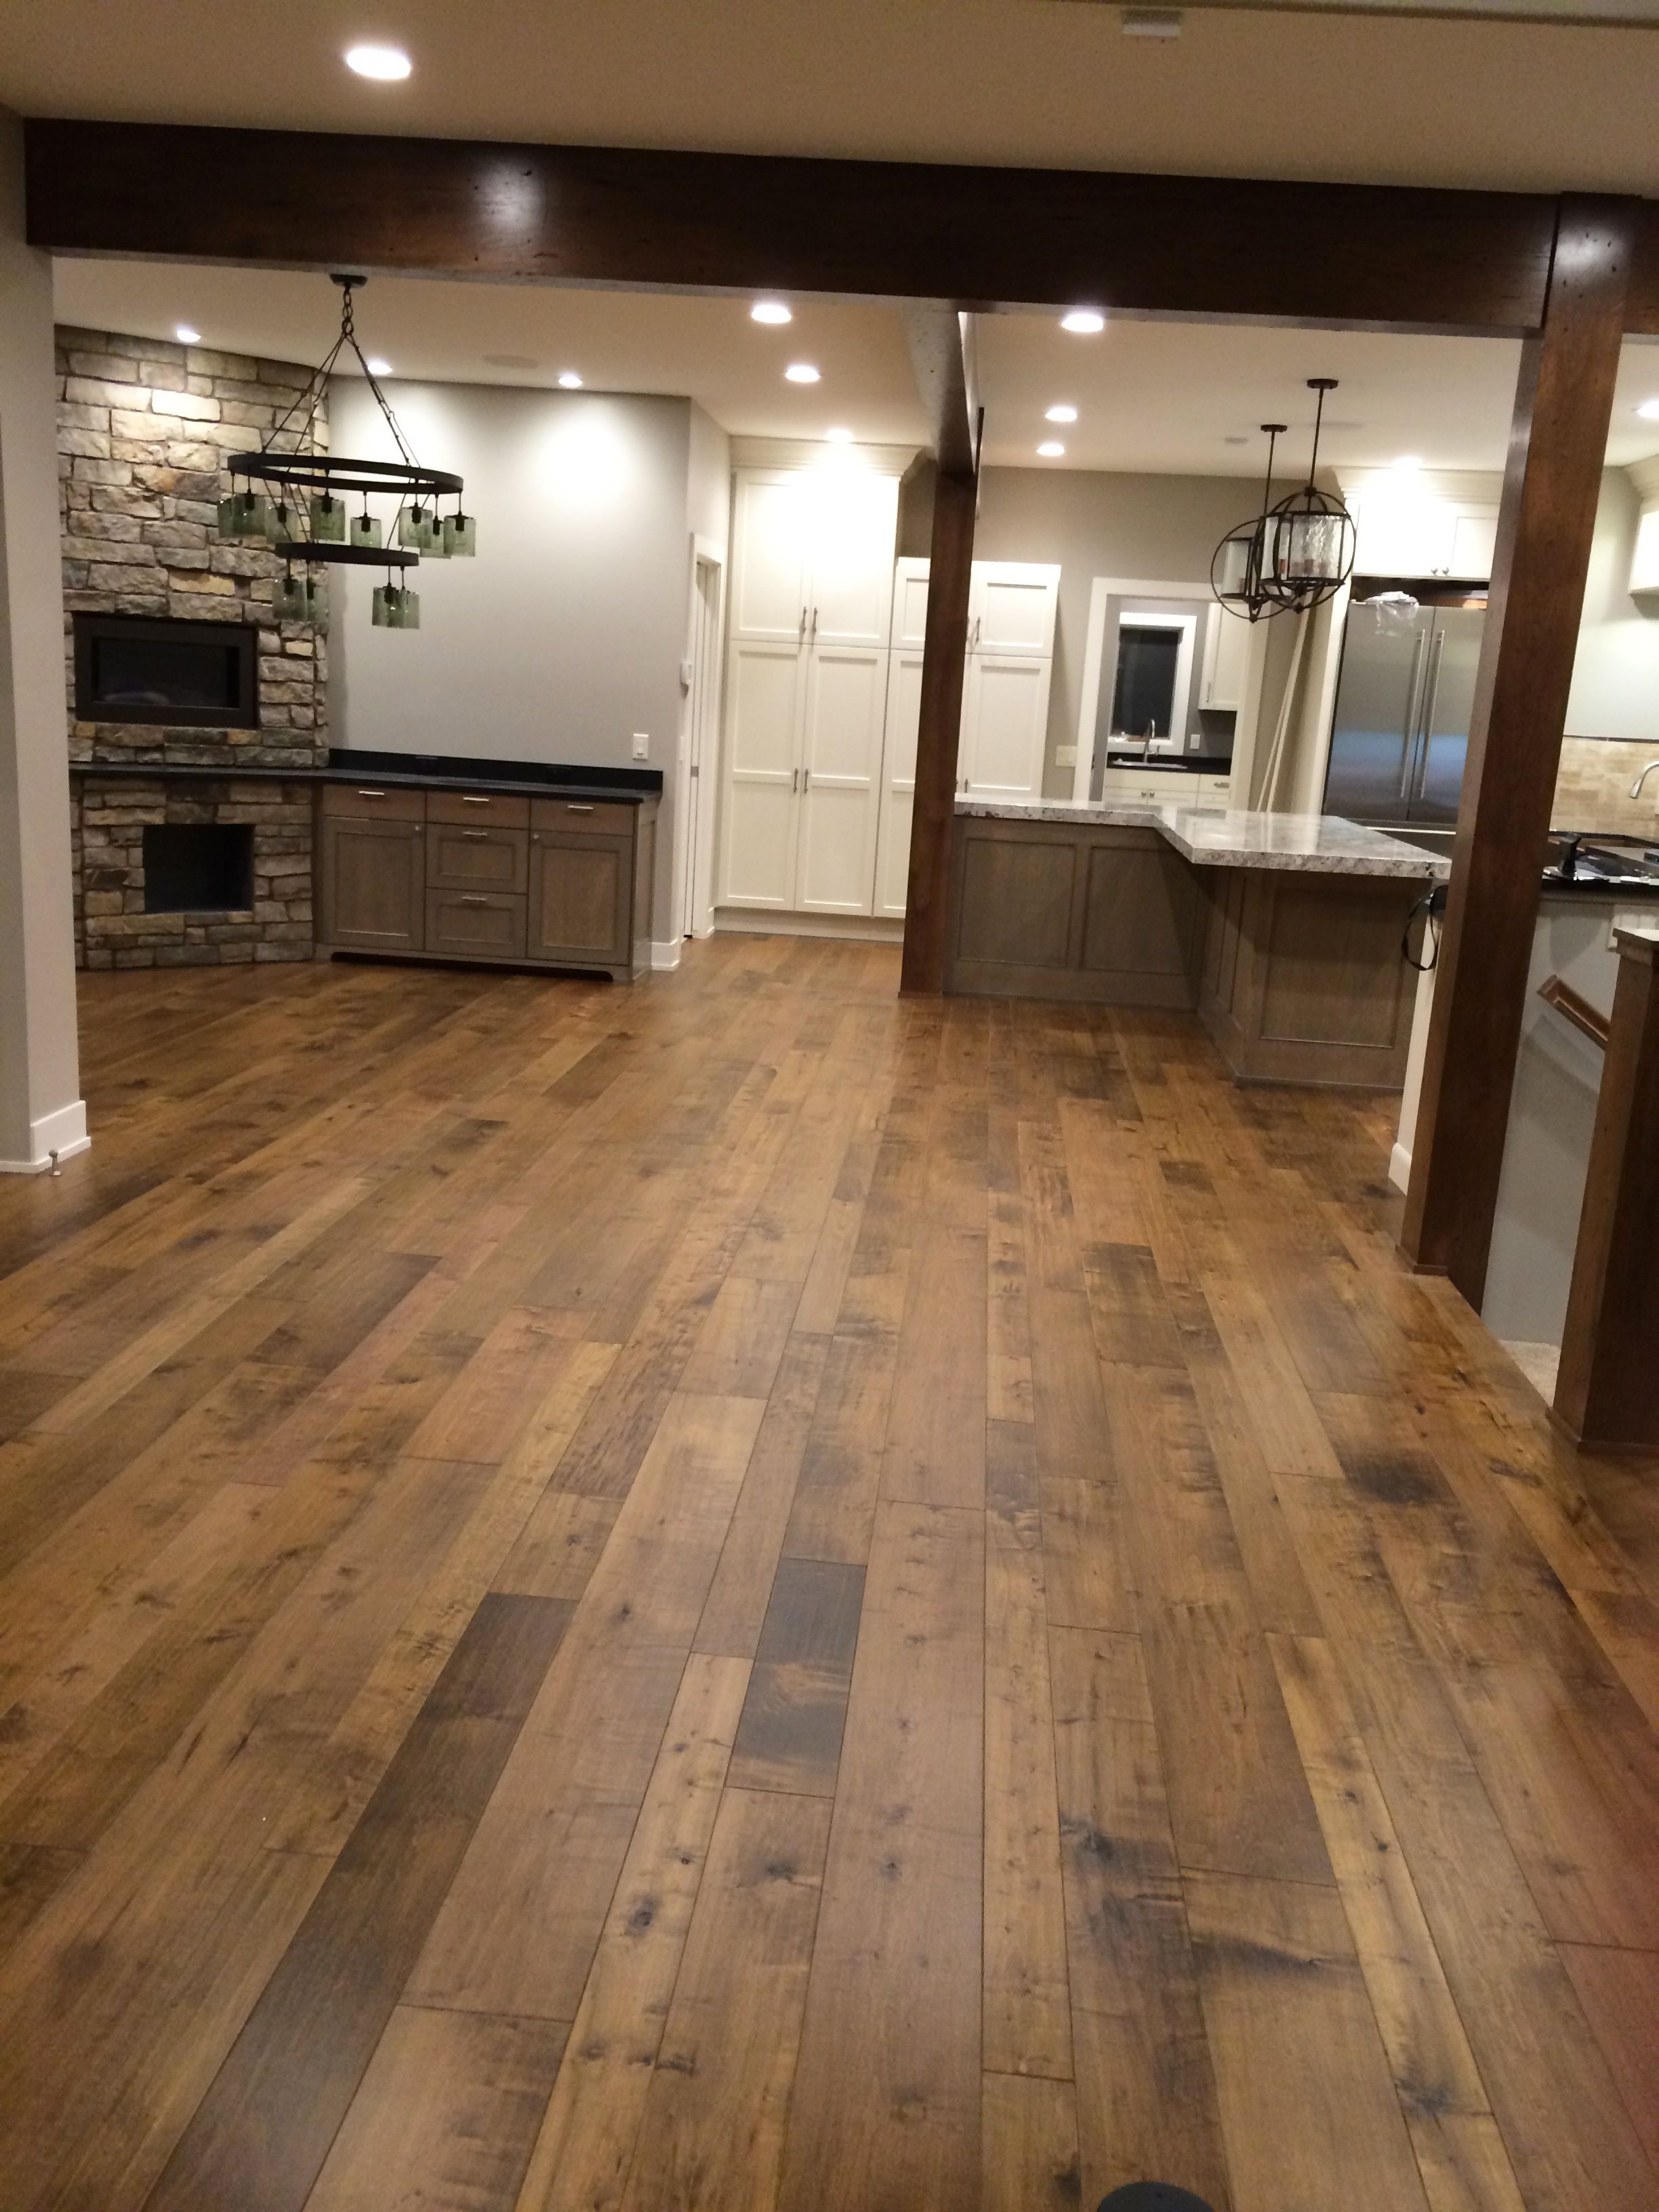 Engineered Hardwood Flooring Calgary Of Wood Flooring Ideas Floor Plan Ideas In the Floors Were Purchased From Carpets Direct and Installed by Fulton Construction Engineered Hardwood Flooring Collection